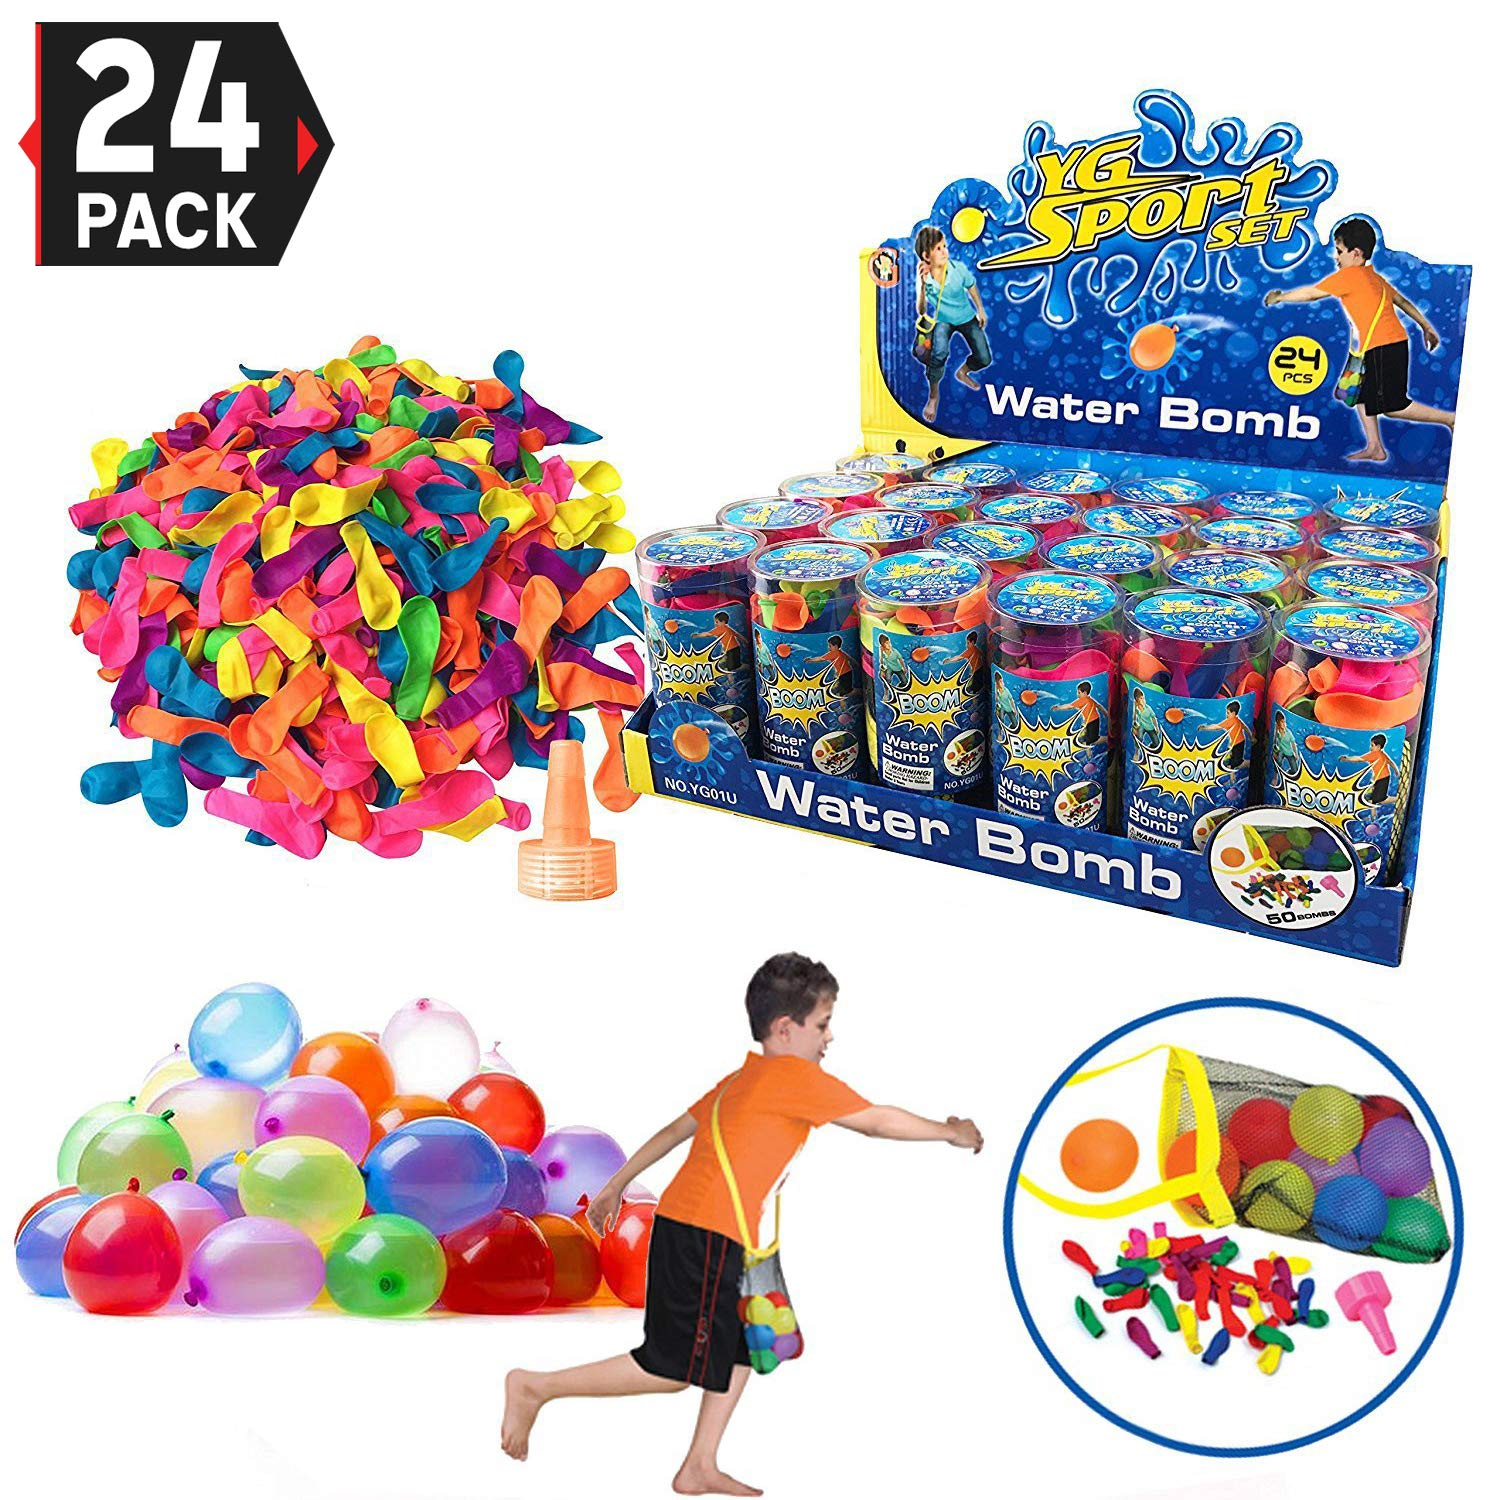 24 Pack - Refill Kits of Latex Water Balloons Bomb - Summer Water Balloon Fight, Party Favors, Sports Fun for Kids and Adults - Multicolored with Nozzle and Carry Bag (1200 Count) by Liberty Imports